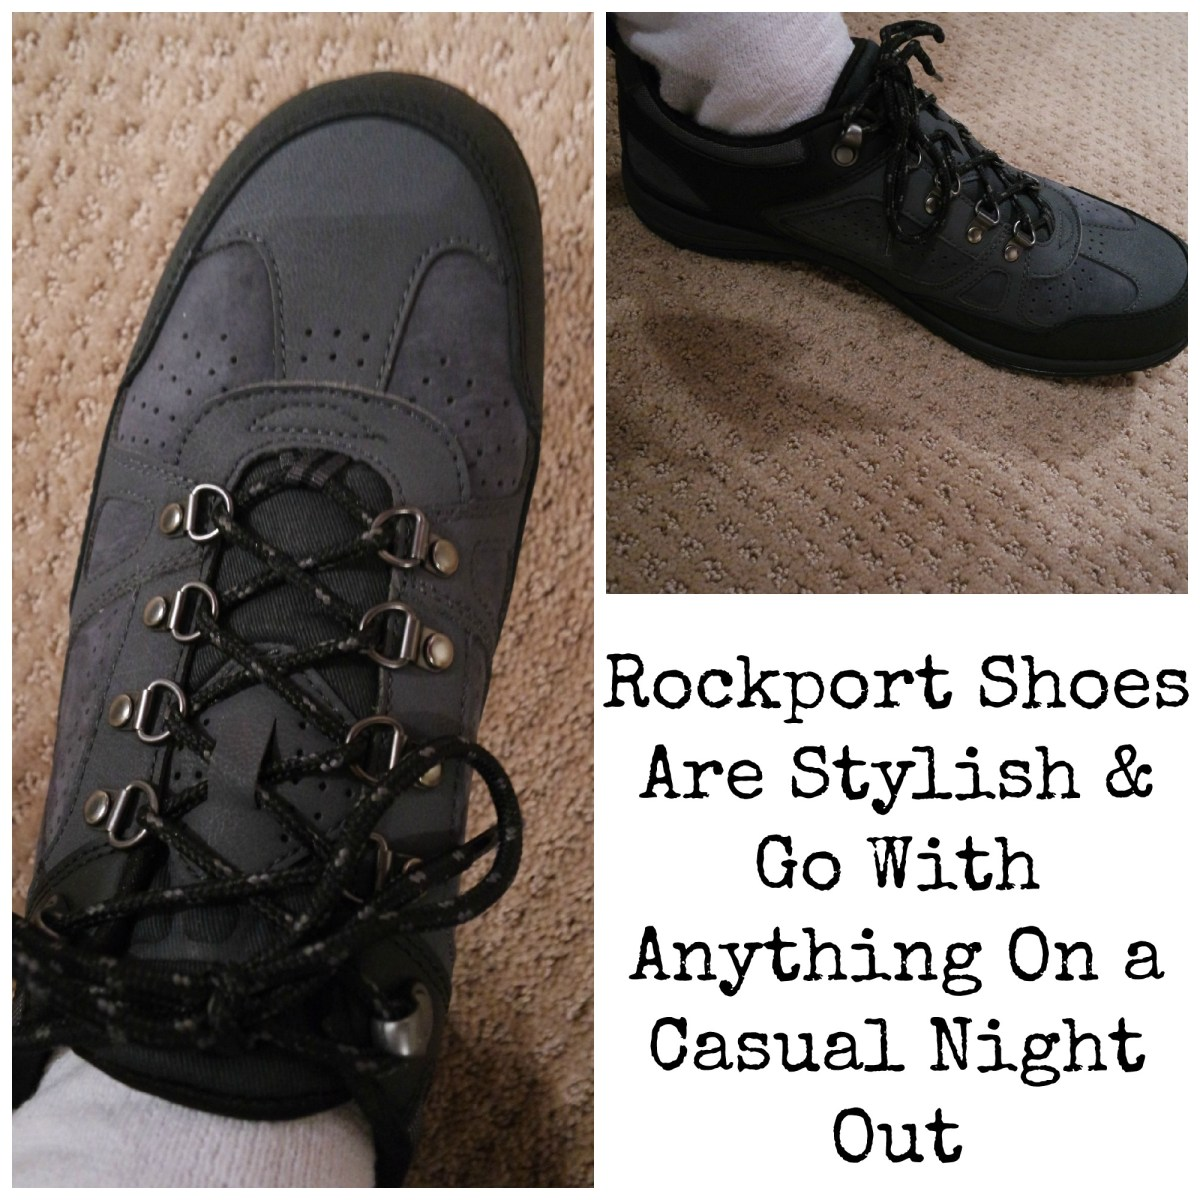 Rockport Shoes Let You Have Adventures Every Day! #Giveaway